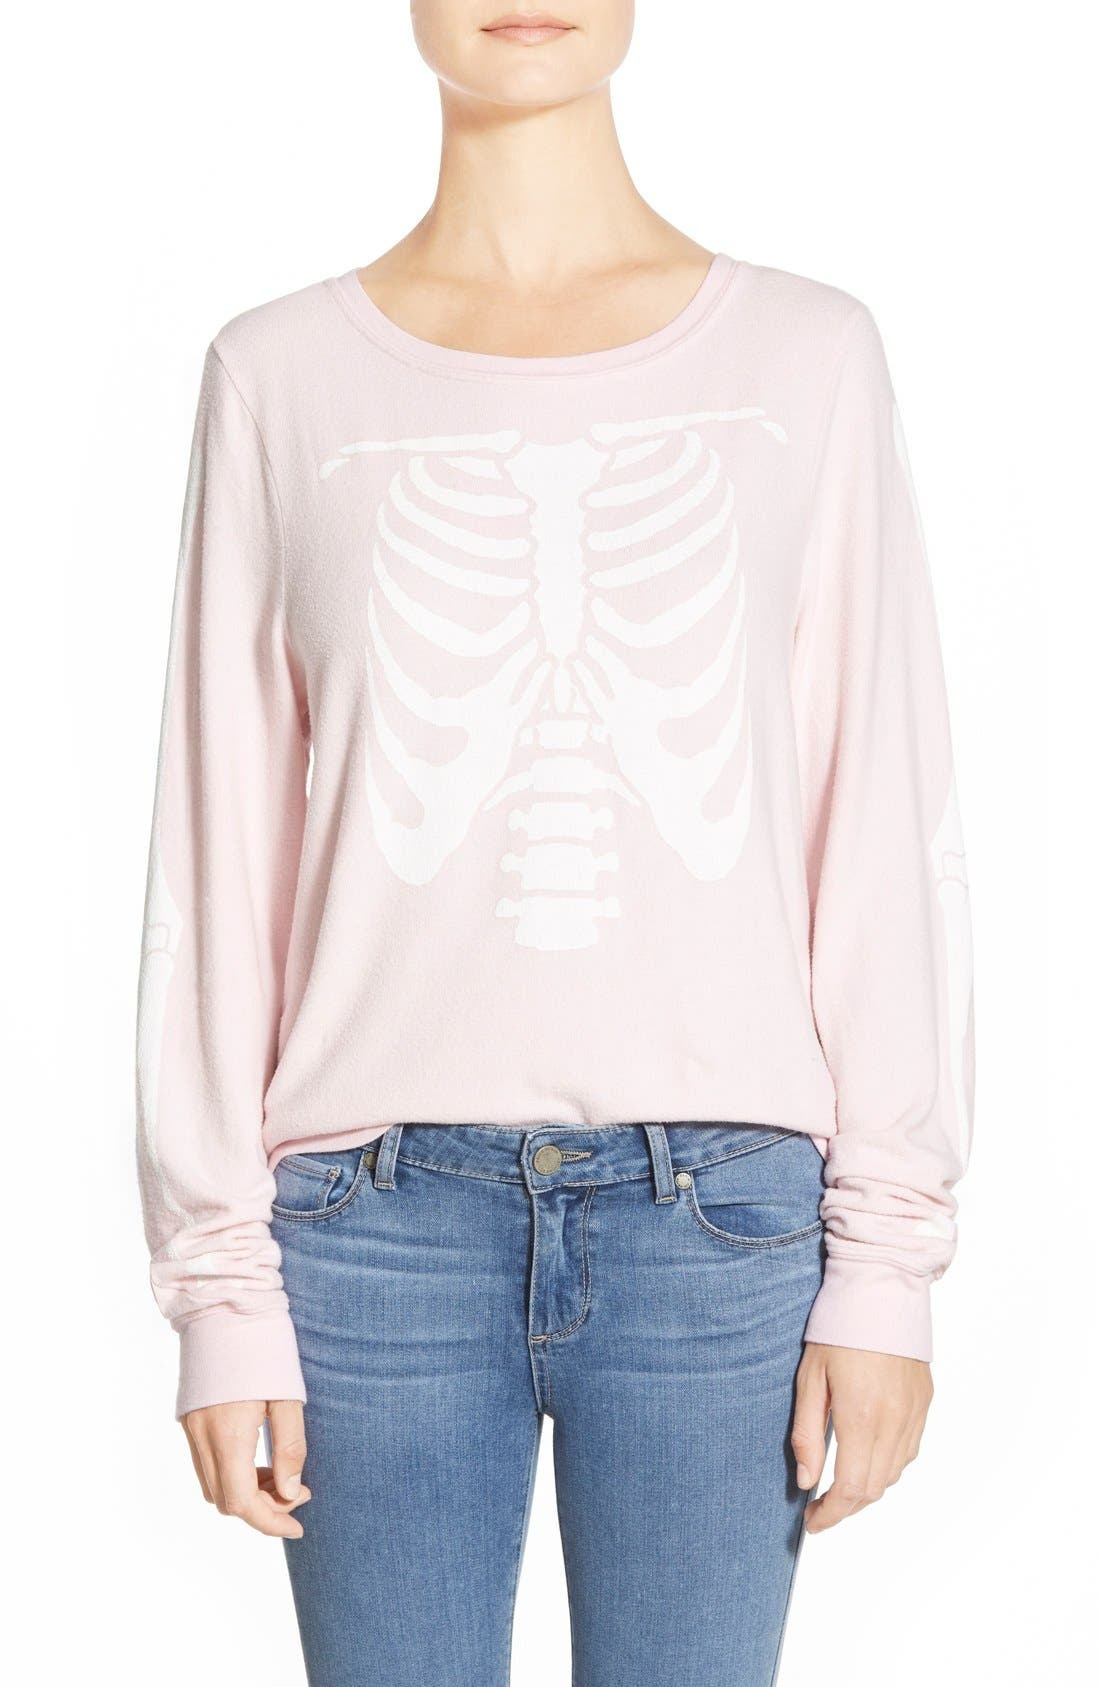 Main Image - Wildfox 'Inside Out' Long Sleeve Sweatshirt